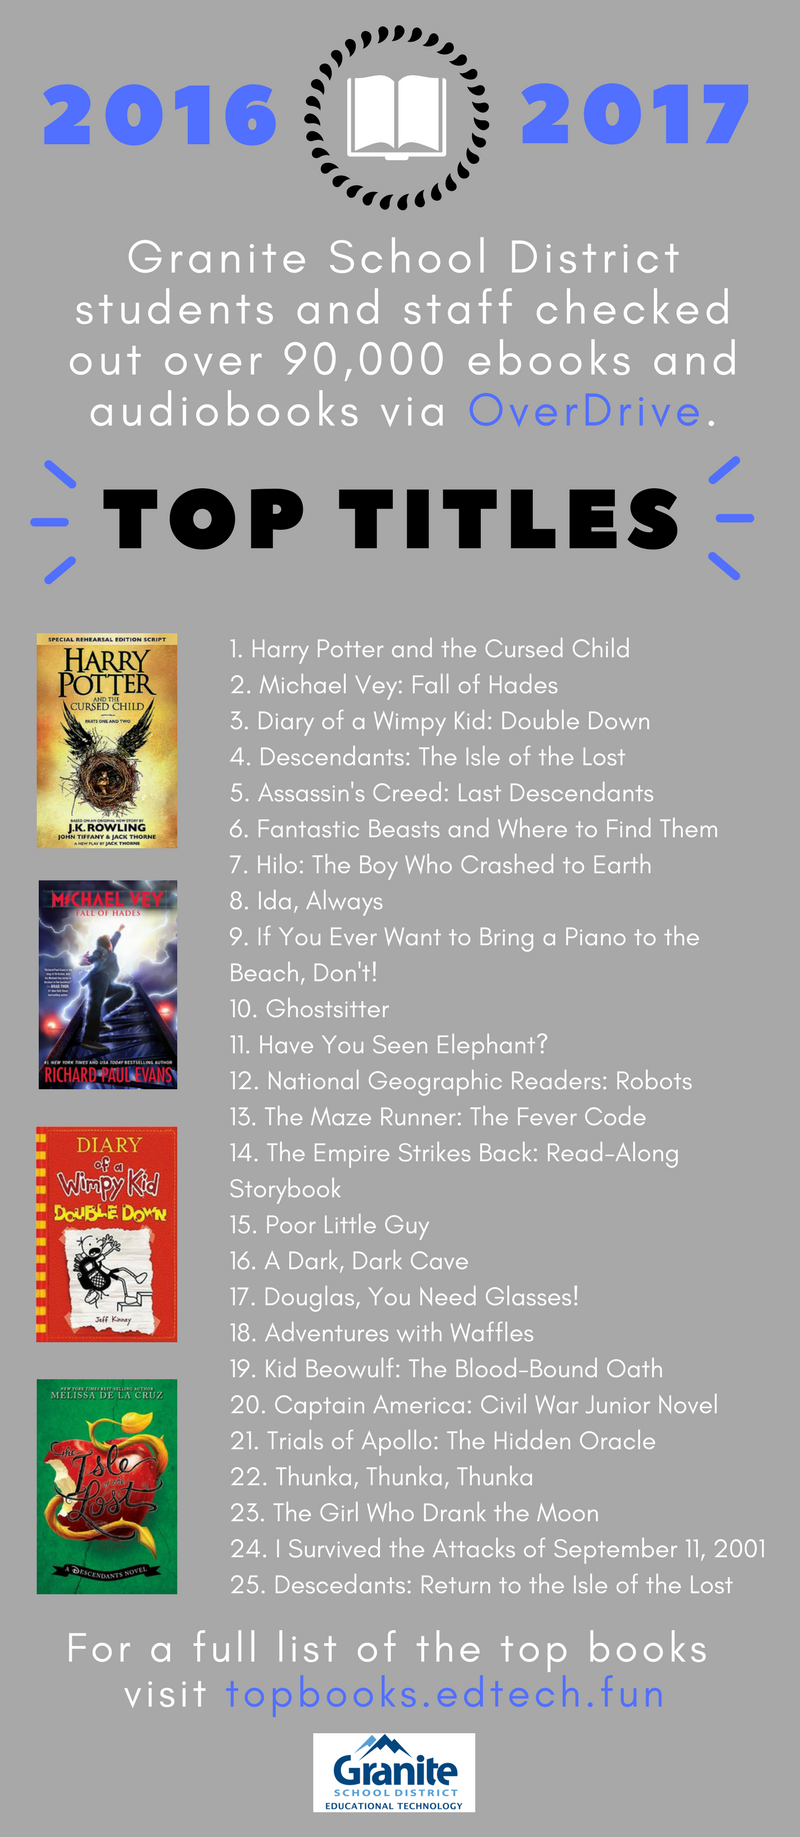 Top circulating library books in granite school district 2016 2017 granites overdrive digital library provides ebook and digital audiobook checkouts to students and staff in granite school district fandeluxe Image collections